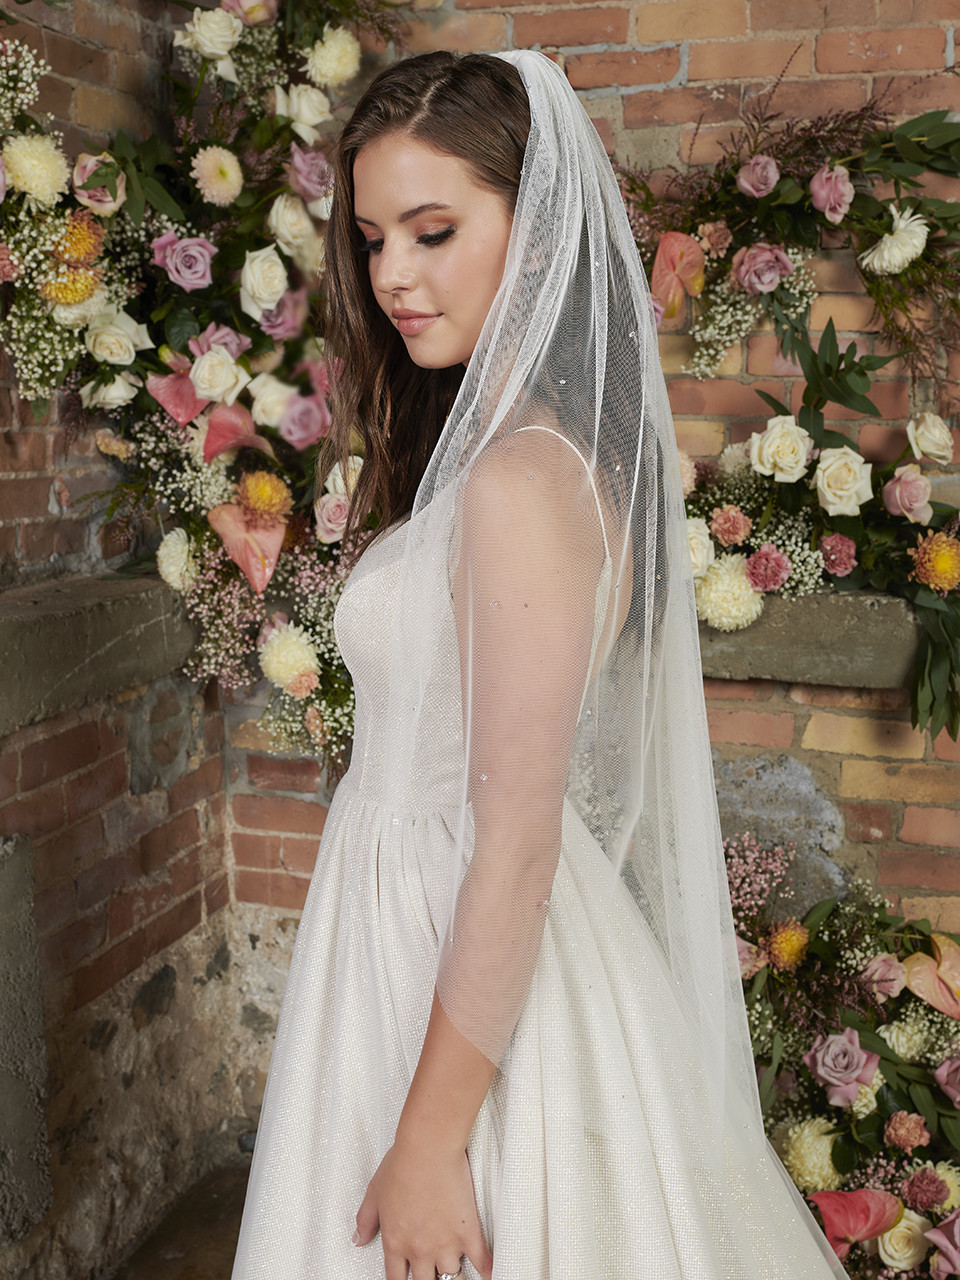 En Vogue Bridal Style V2293SF - English Luxe Tulle Veil With Scattered Rhinestones & Crystals - 41 Inches